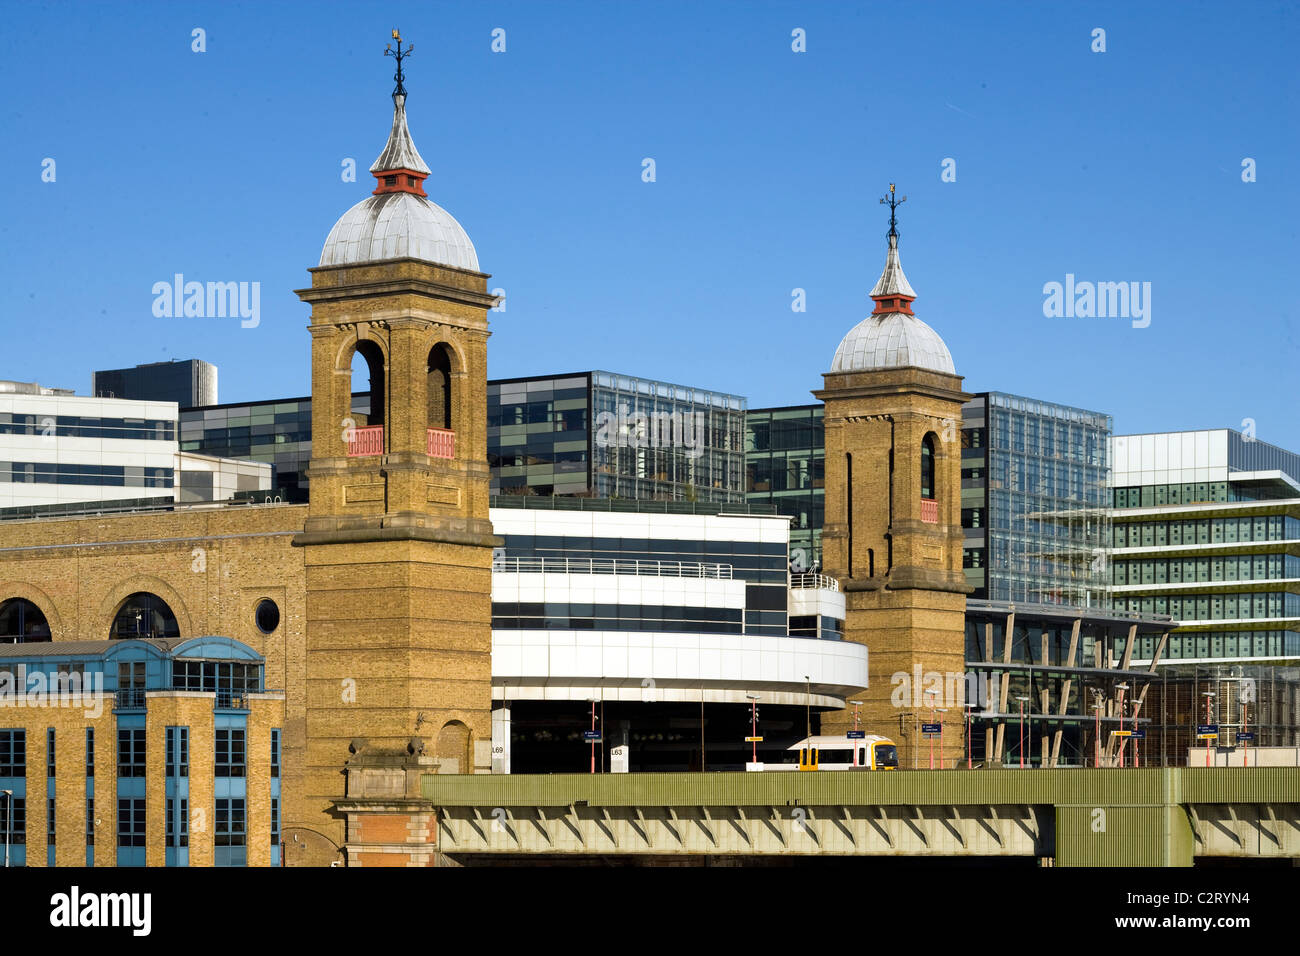 Cannon Street Station, London, England - Stock Image